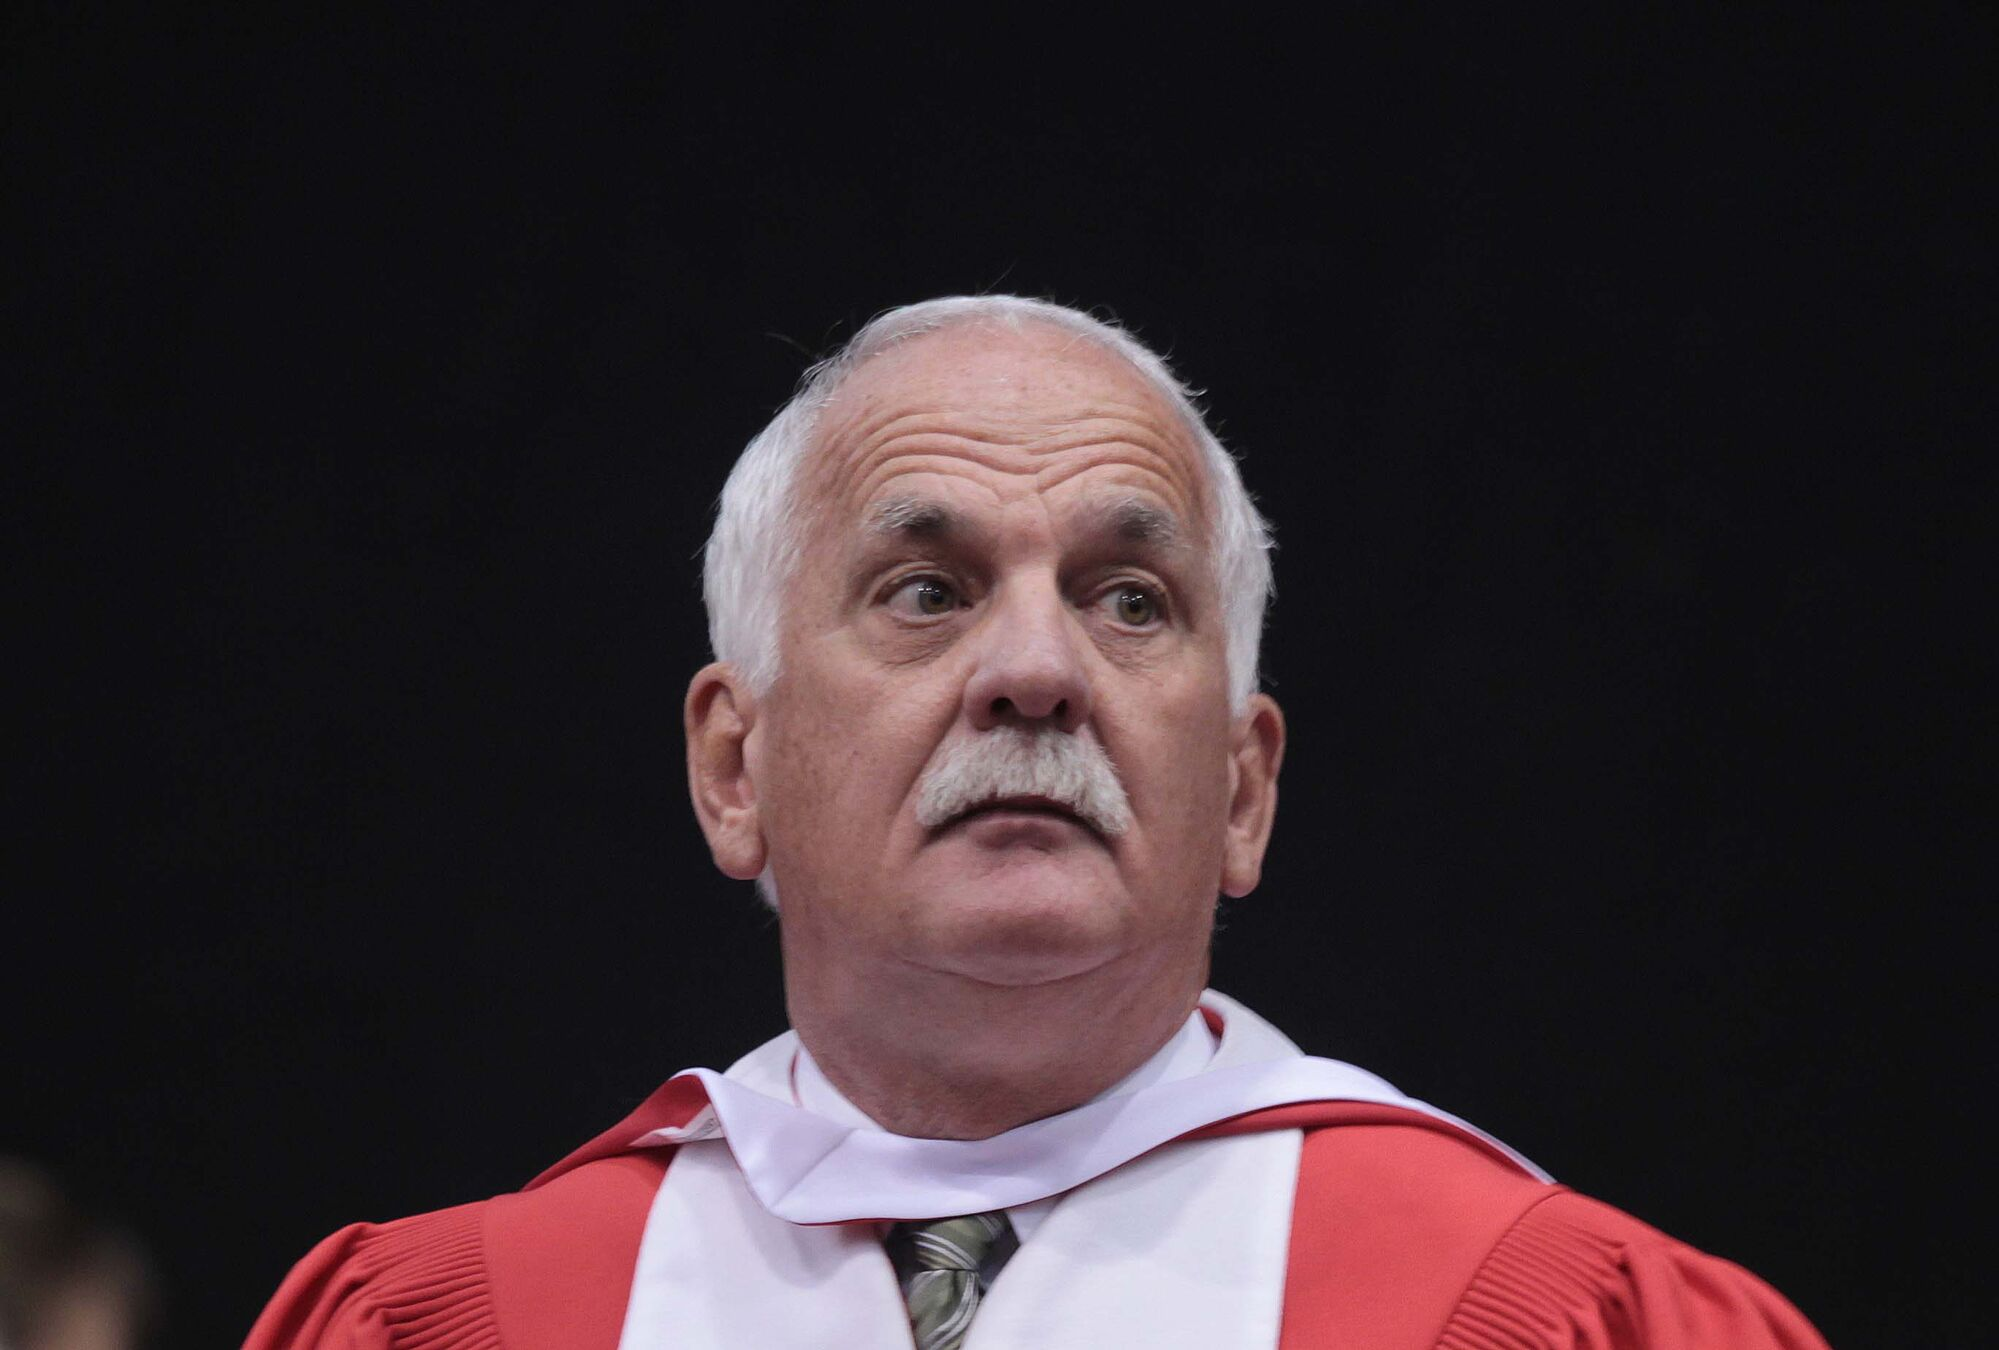 Vic Toews listens during the ceremony at U of W on Sunday.